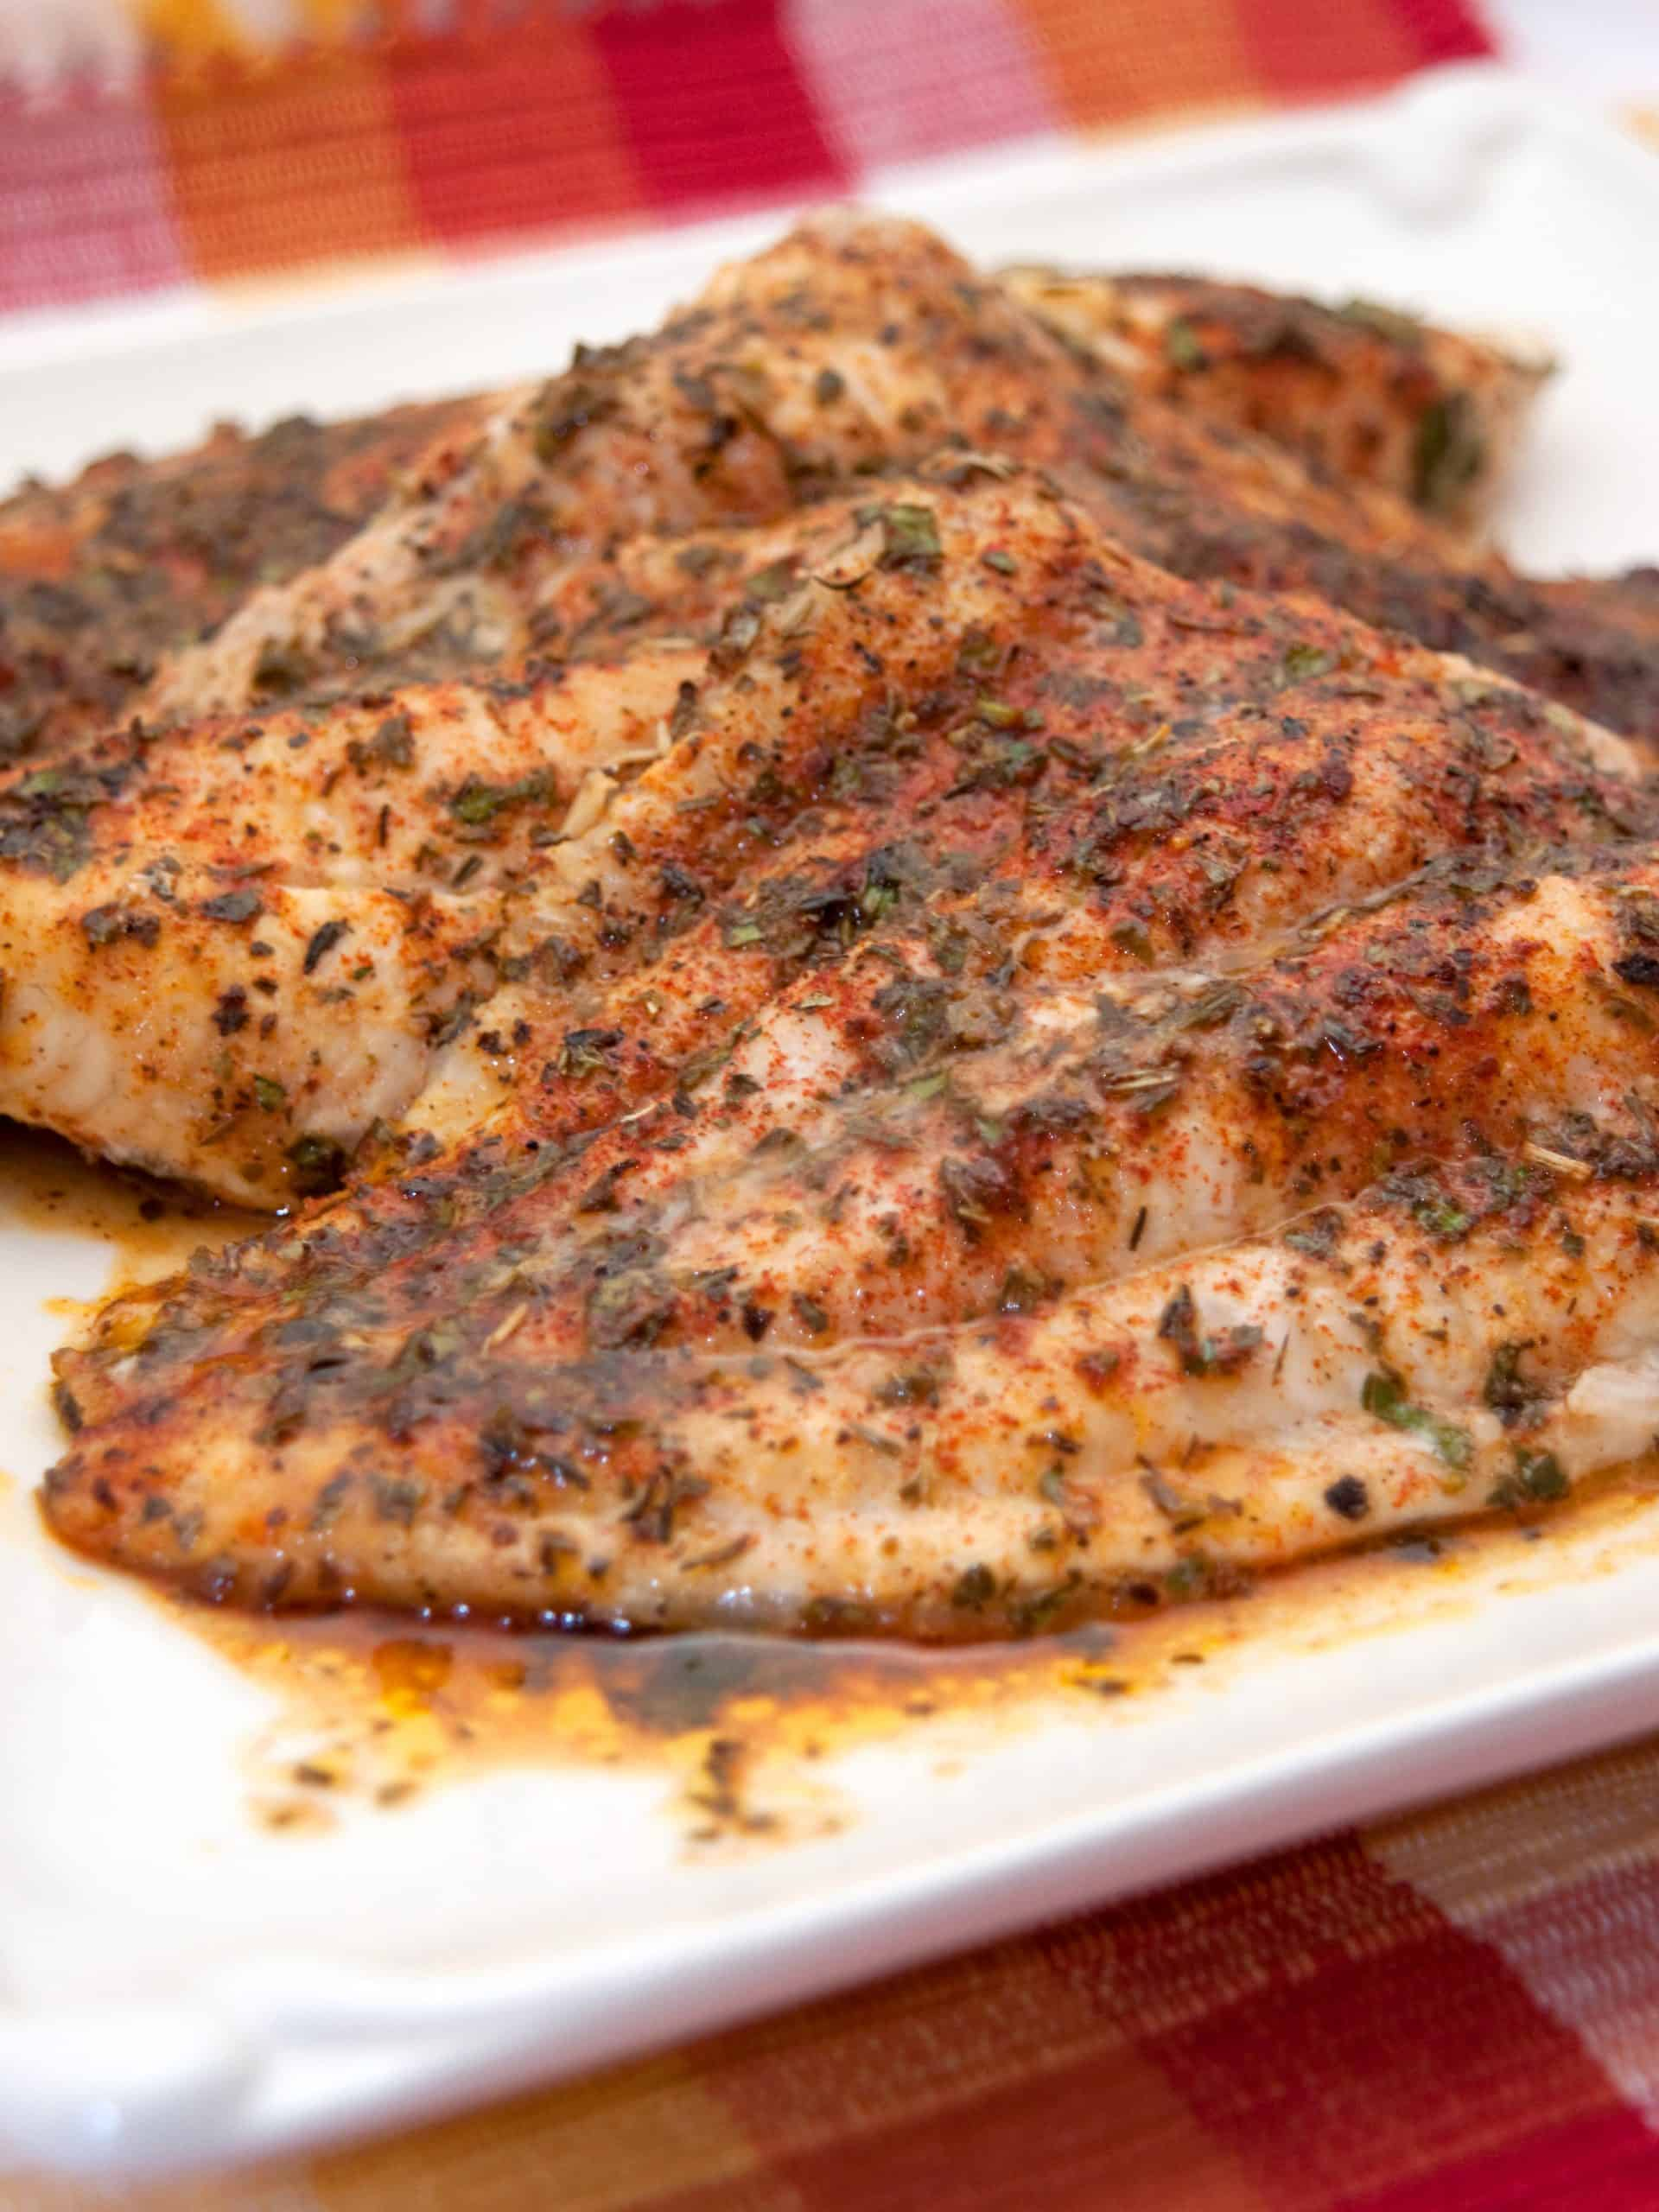 Baked Catfish with Herbs on a serving platter.